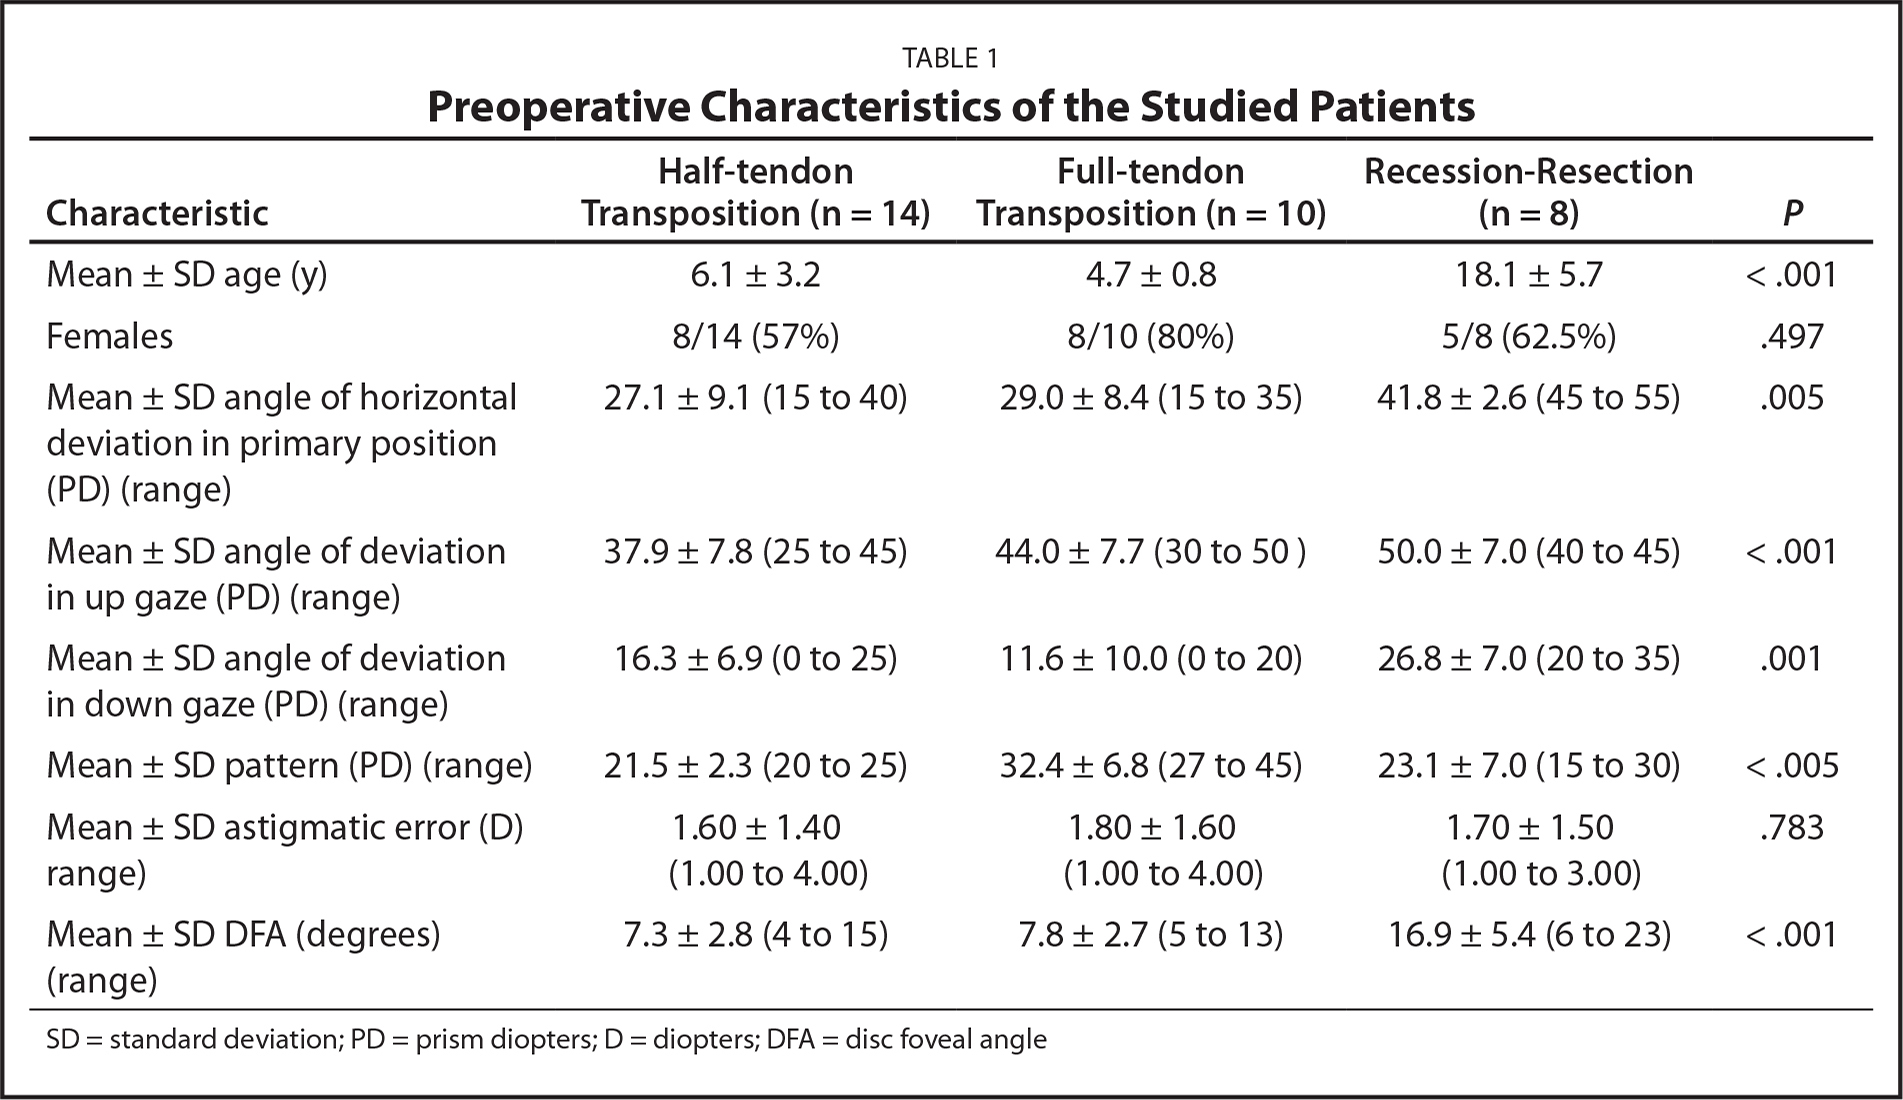 Preoperative Characteristics of the Studied Patients